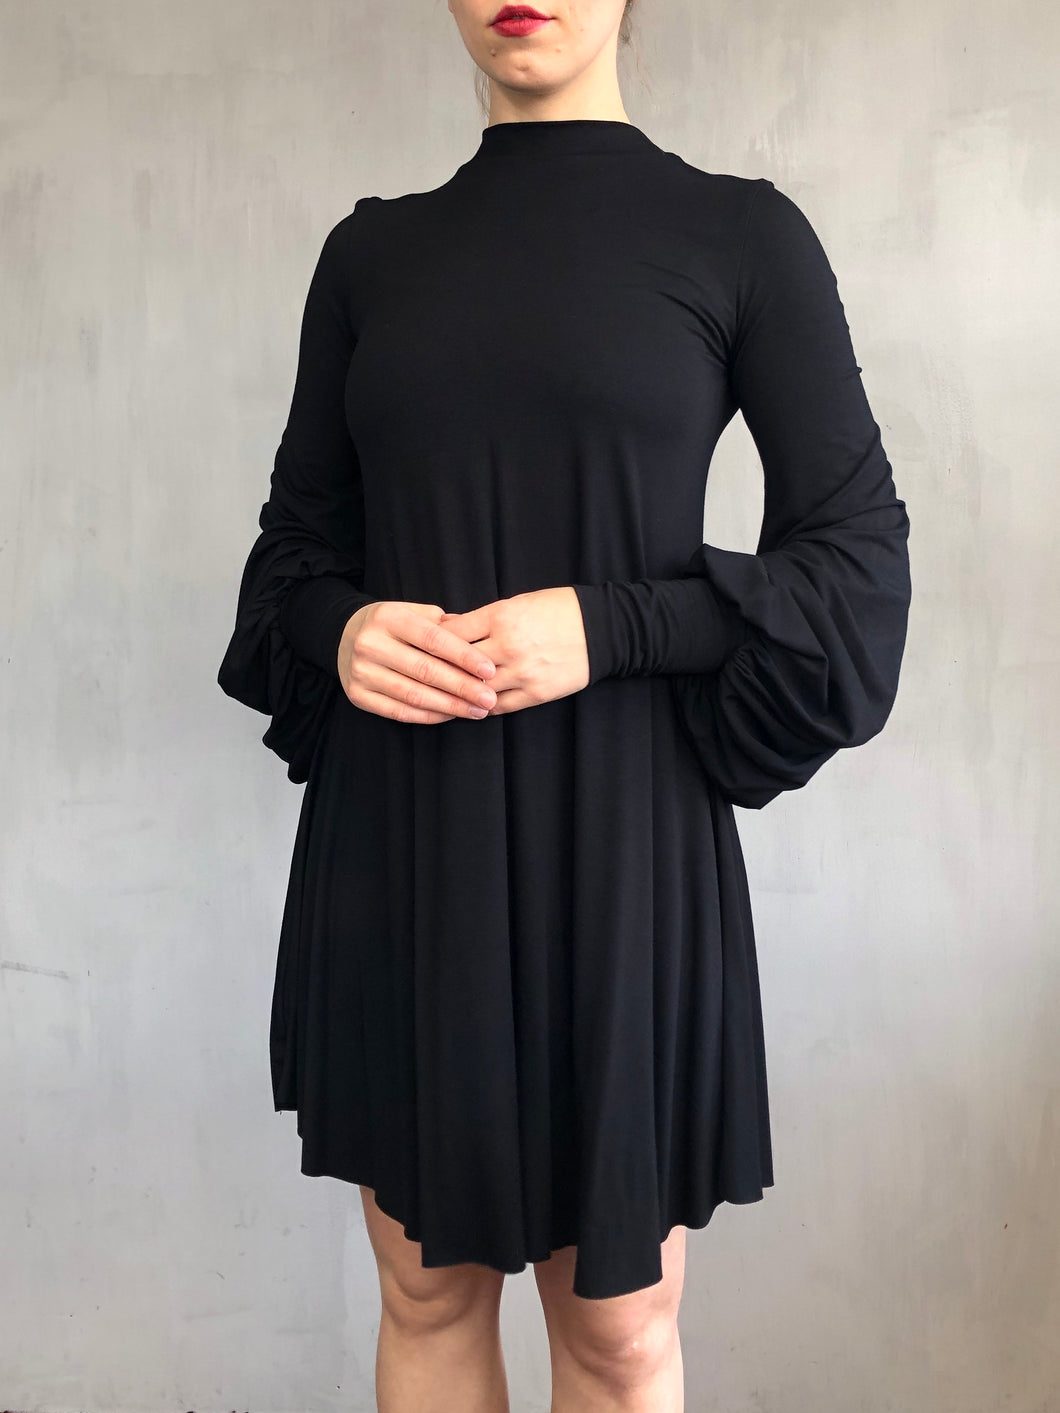 Spring 2021: Bishop Sleeve Mini Dress in Black